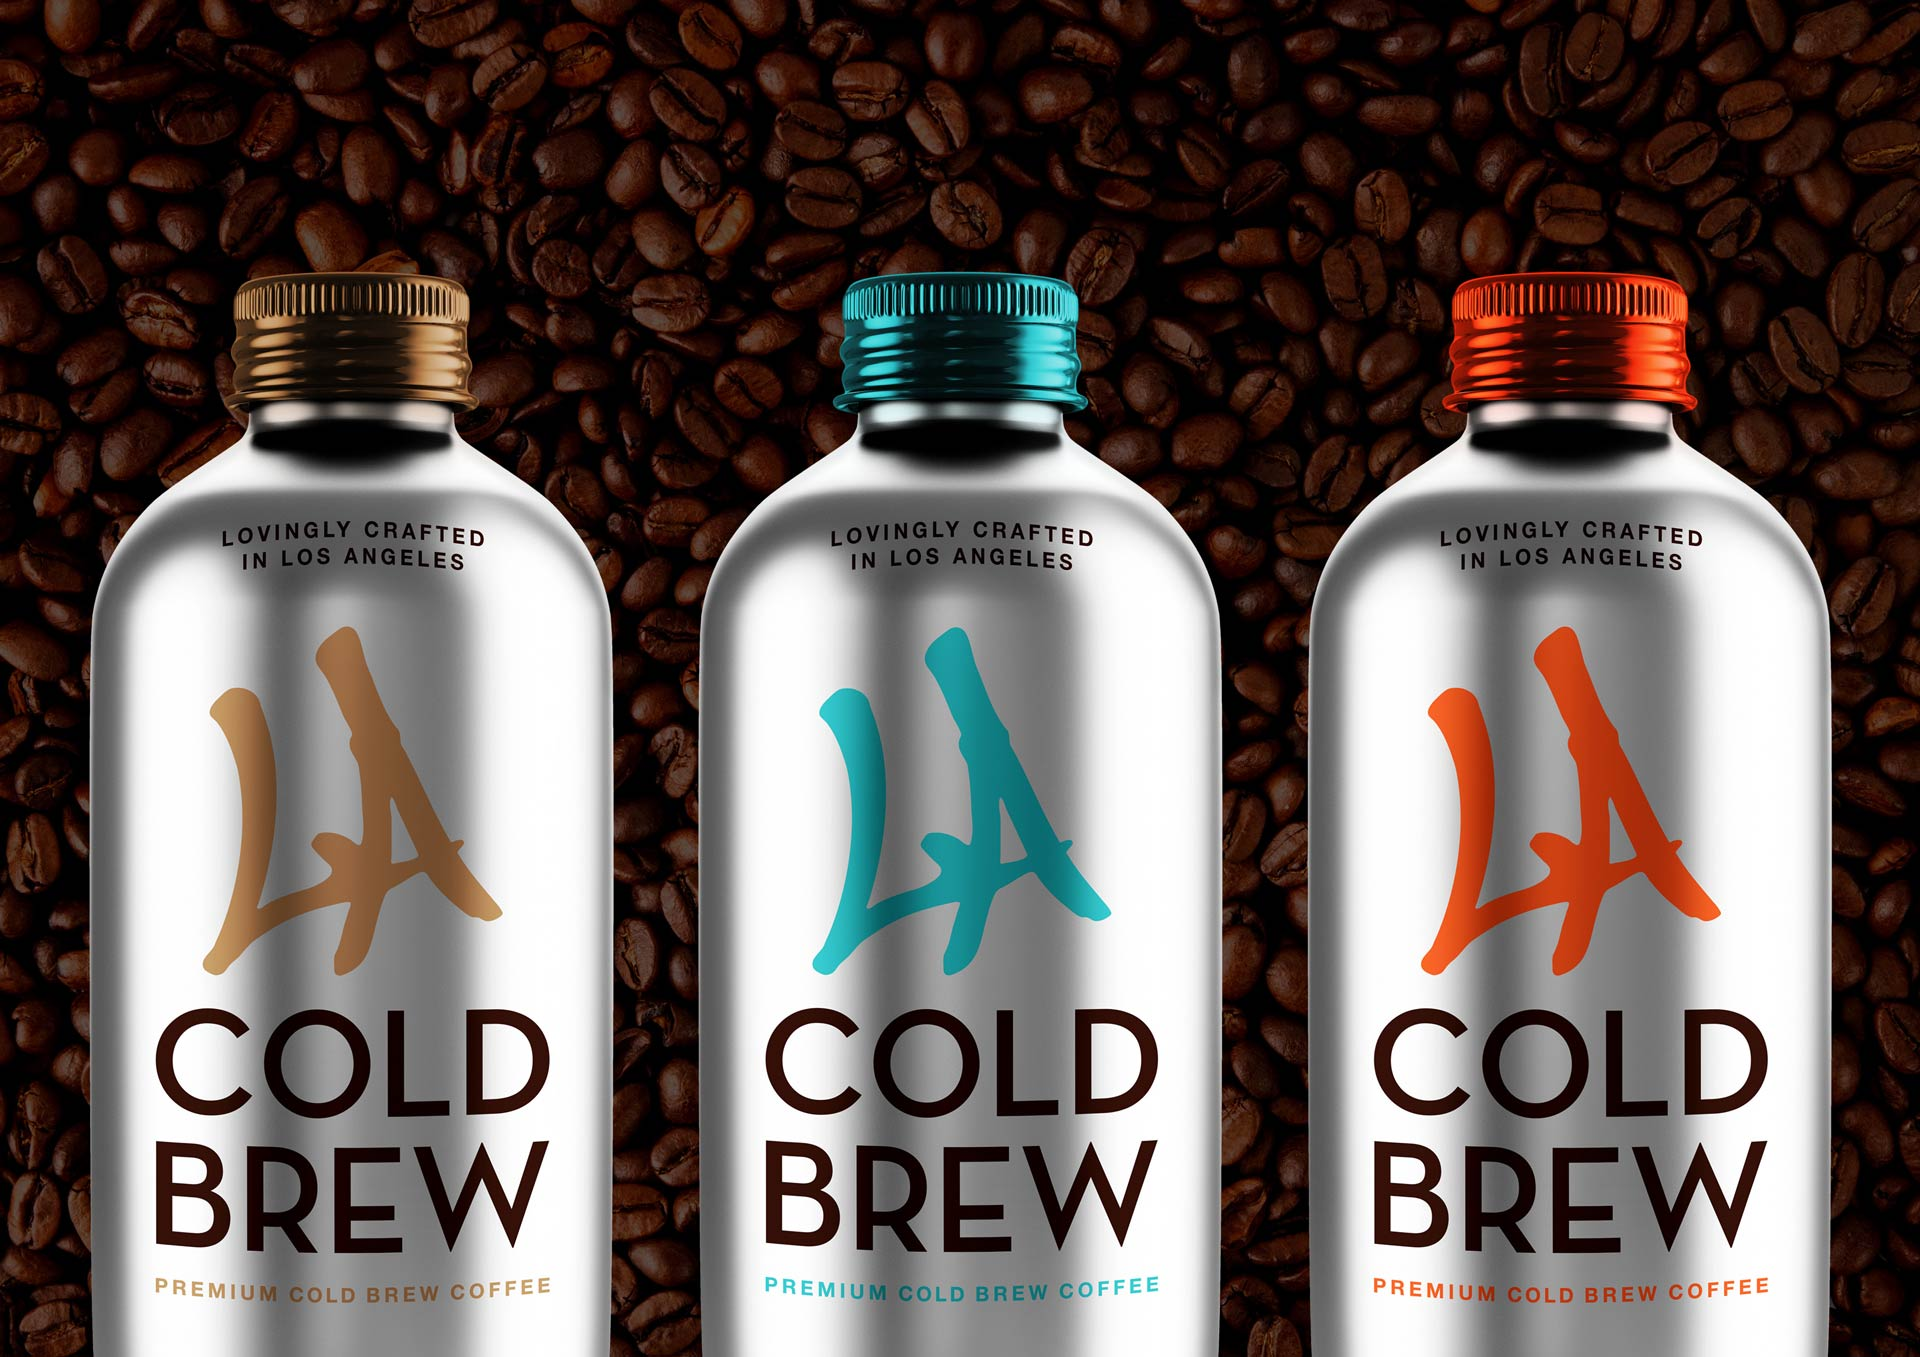 la-cold-brew-packaging-6